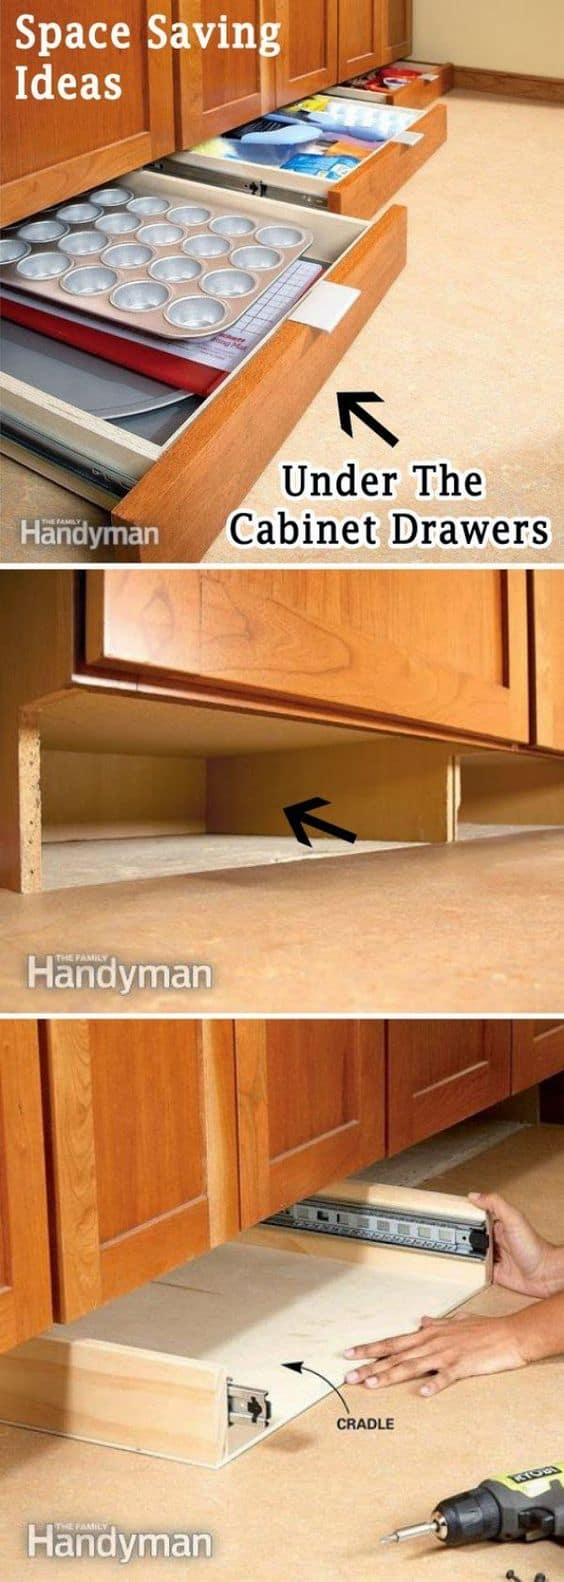 107. ADD MORE STORAGE SPACE ON YOUR CABINET